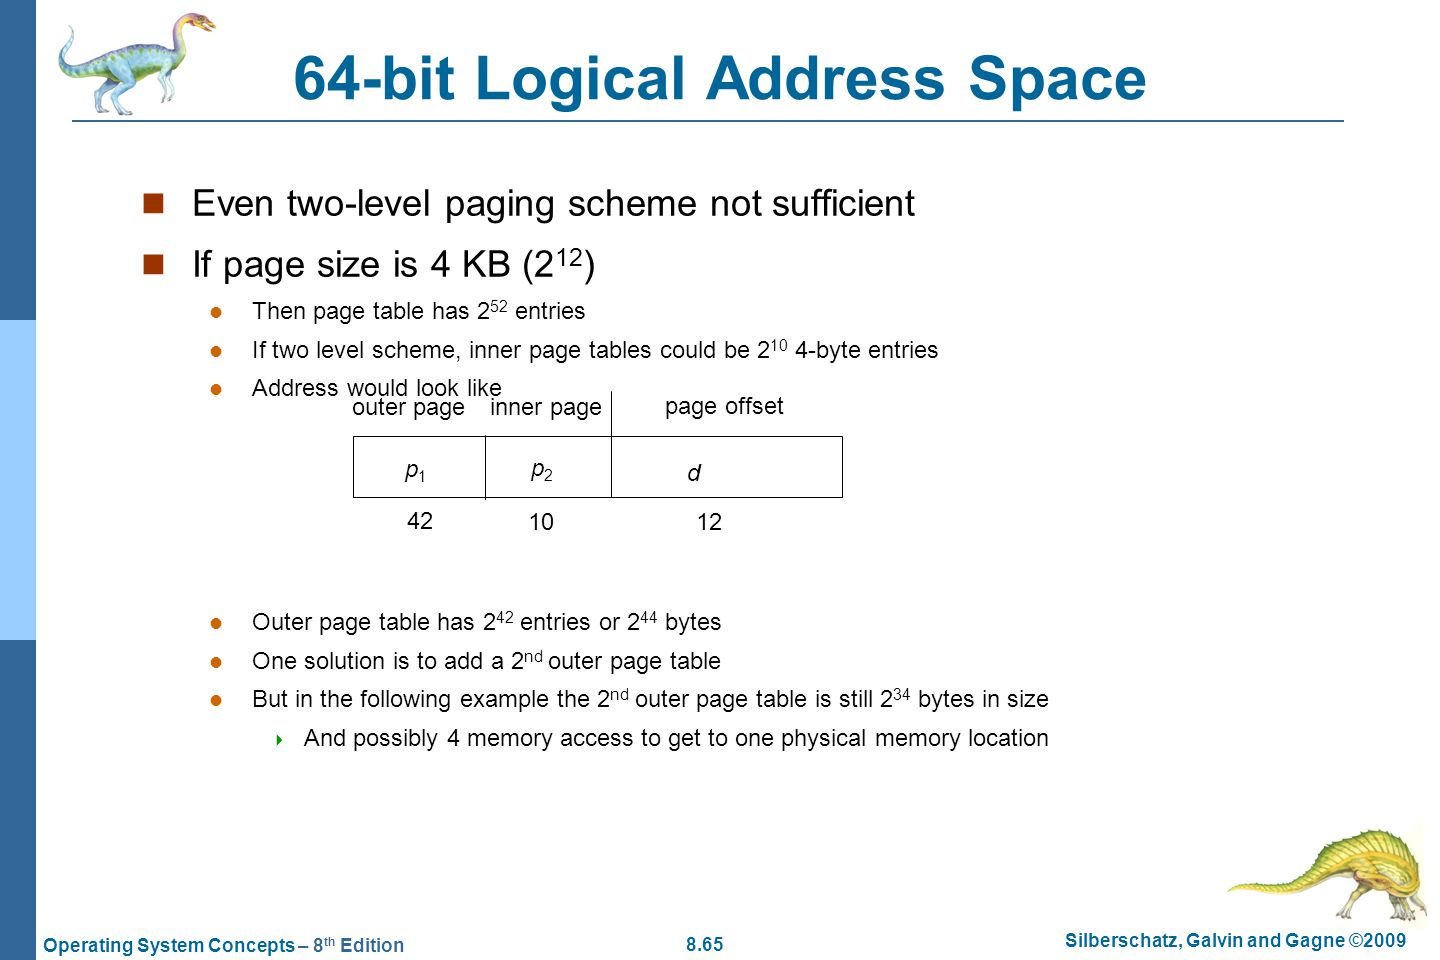 64-bit Logical Address Space